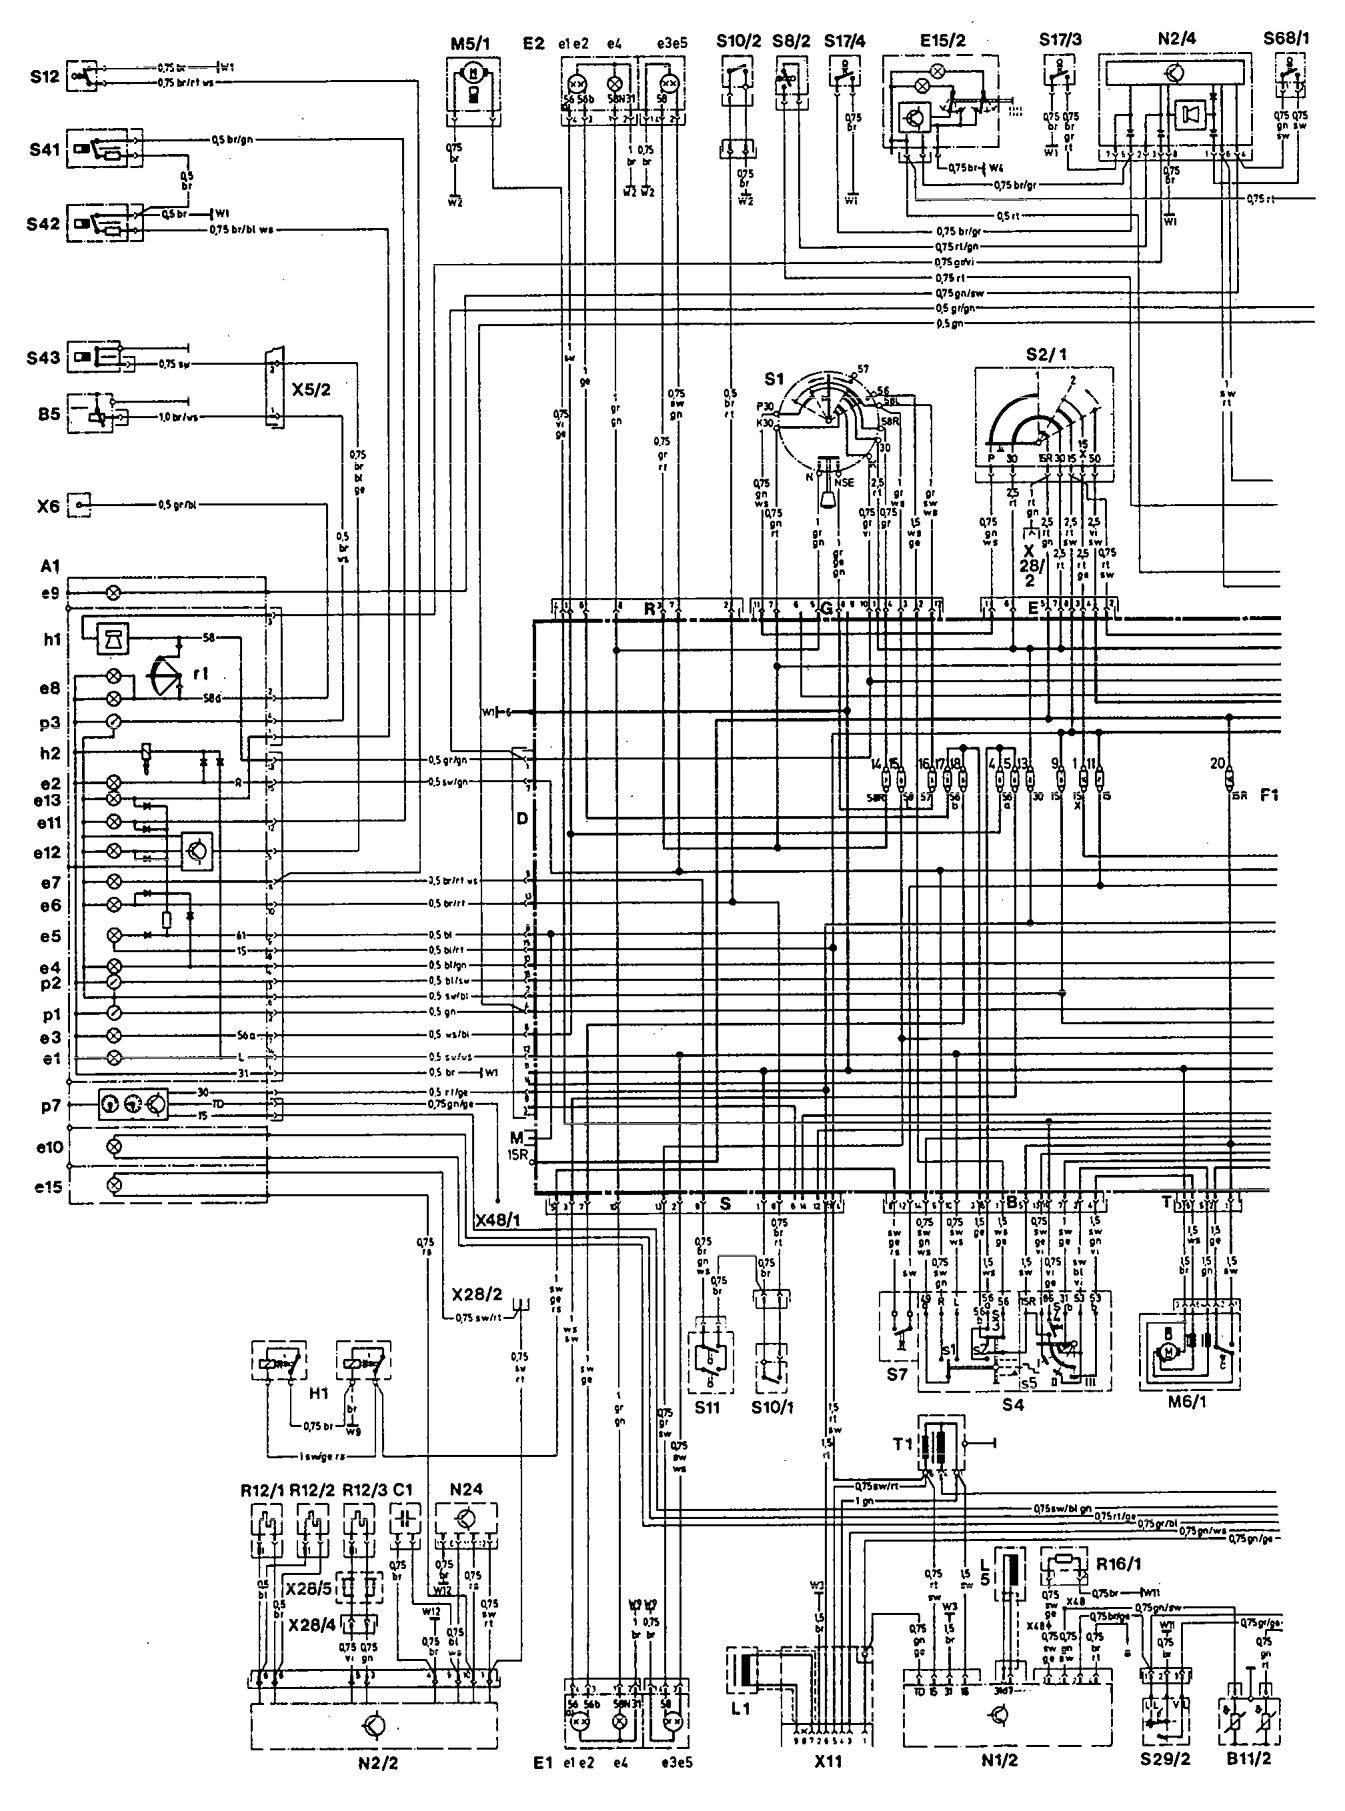 Mercedes Benz 190e 1993 Wiring Diagrams Audible Warning System 200 Cherokee Dome Light Diagram